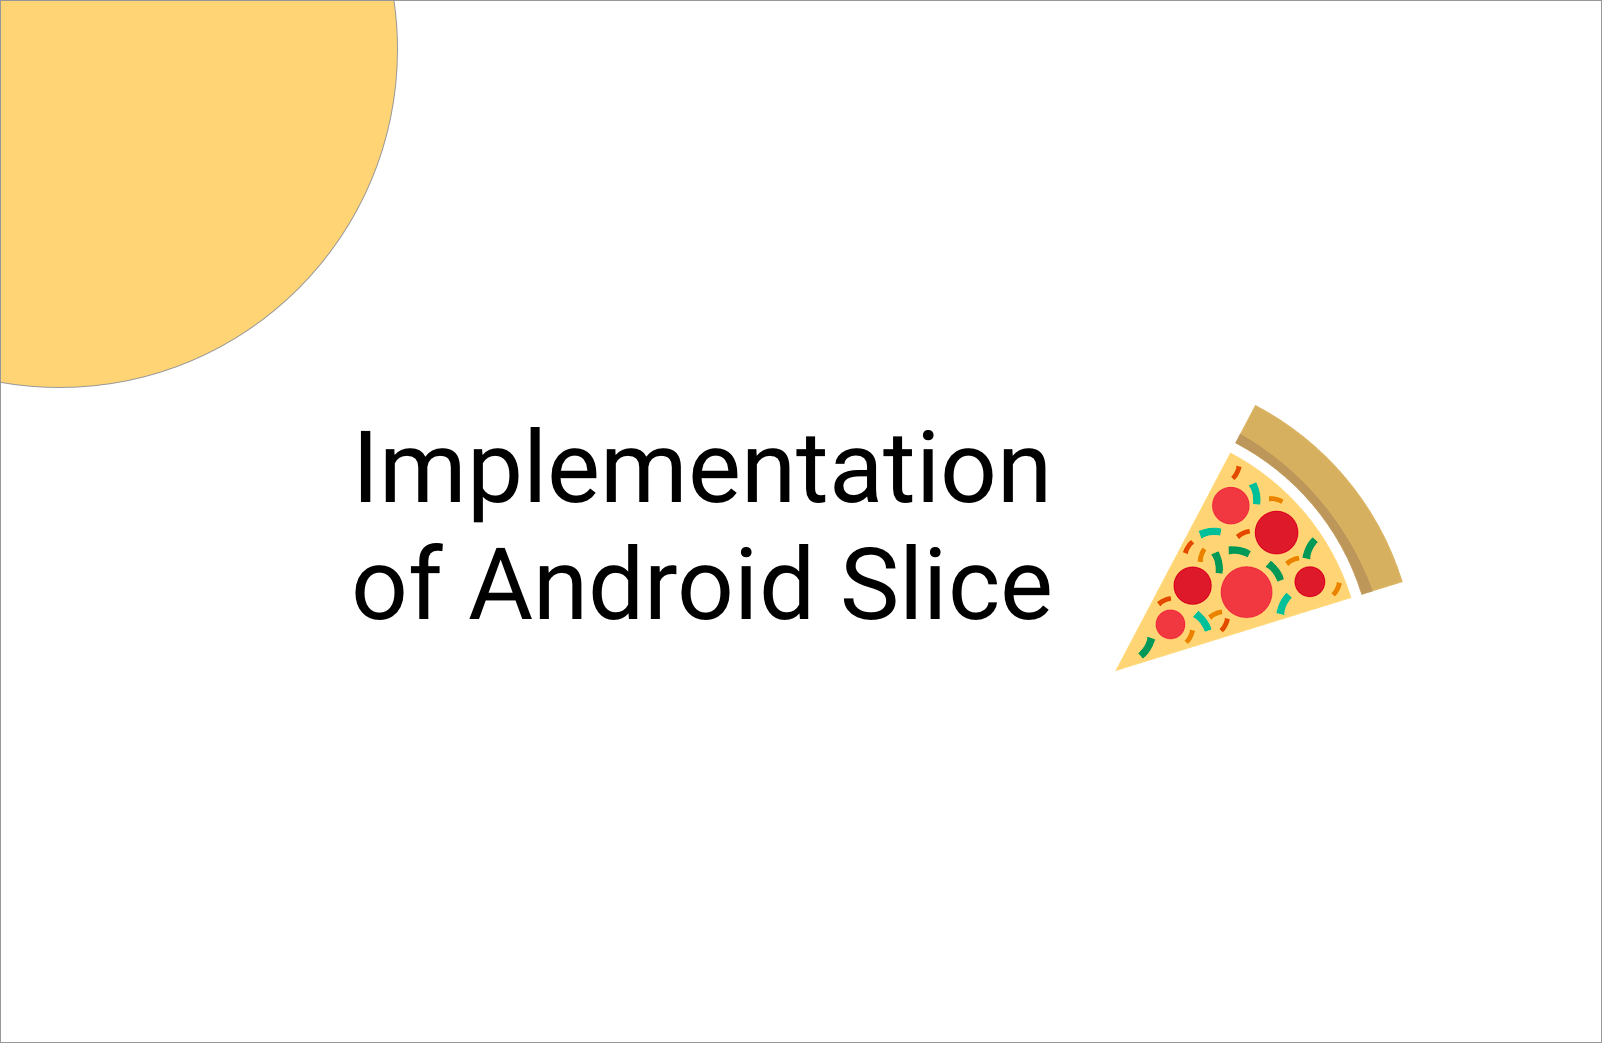 Implementing Android Slice